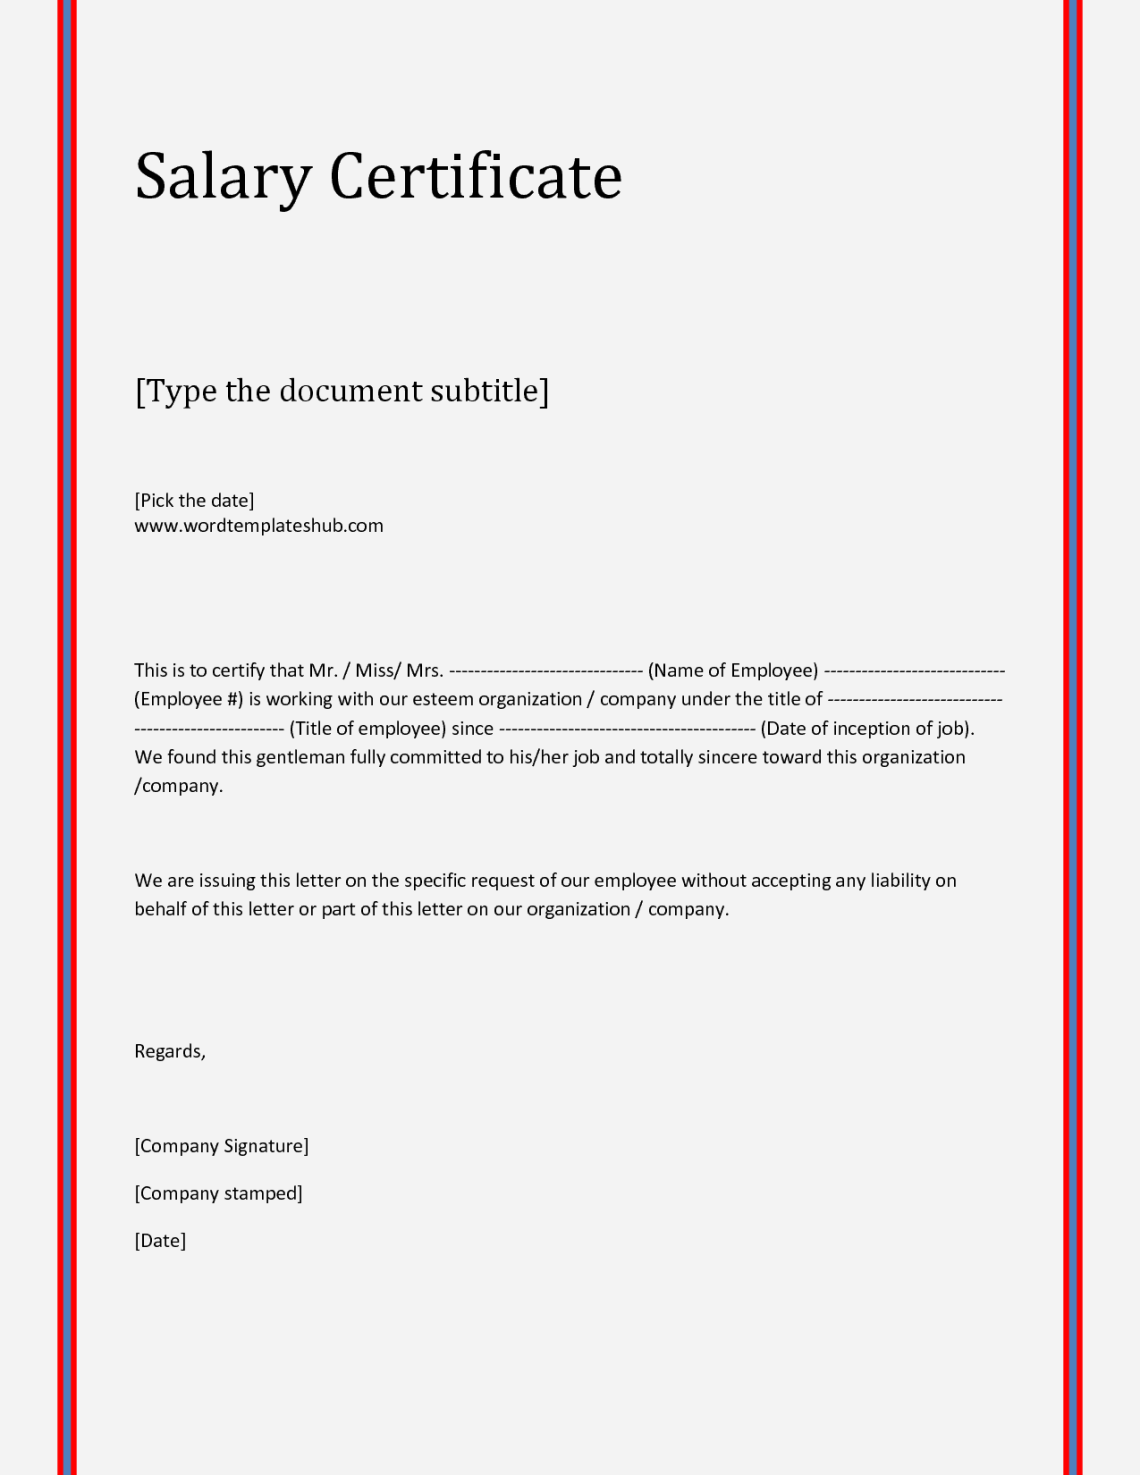 Noc Certificate For Employee invoice template receipt template – What is Noc Certificate